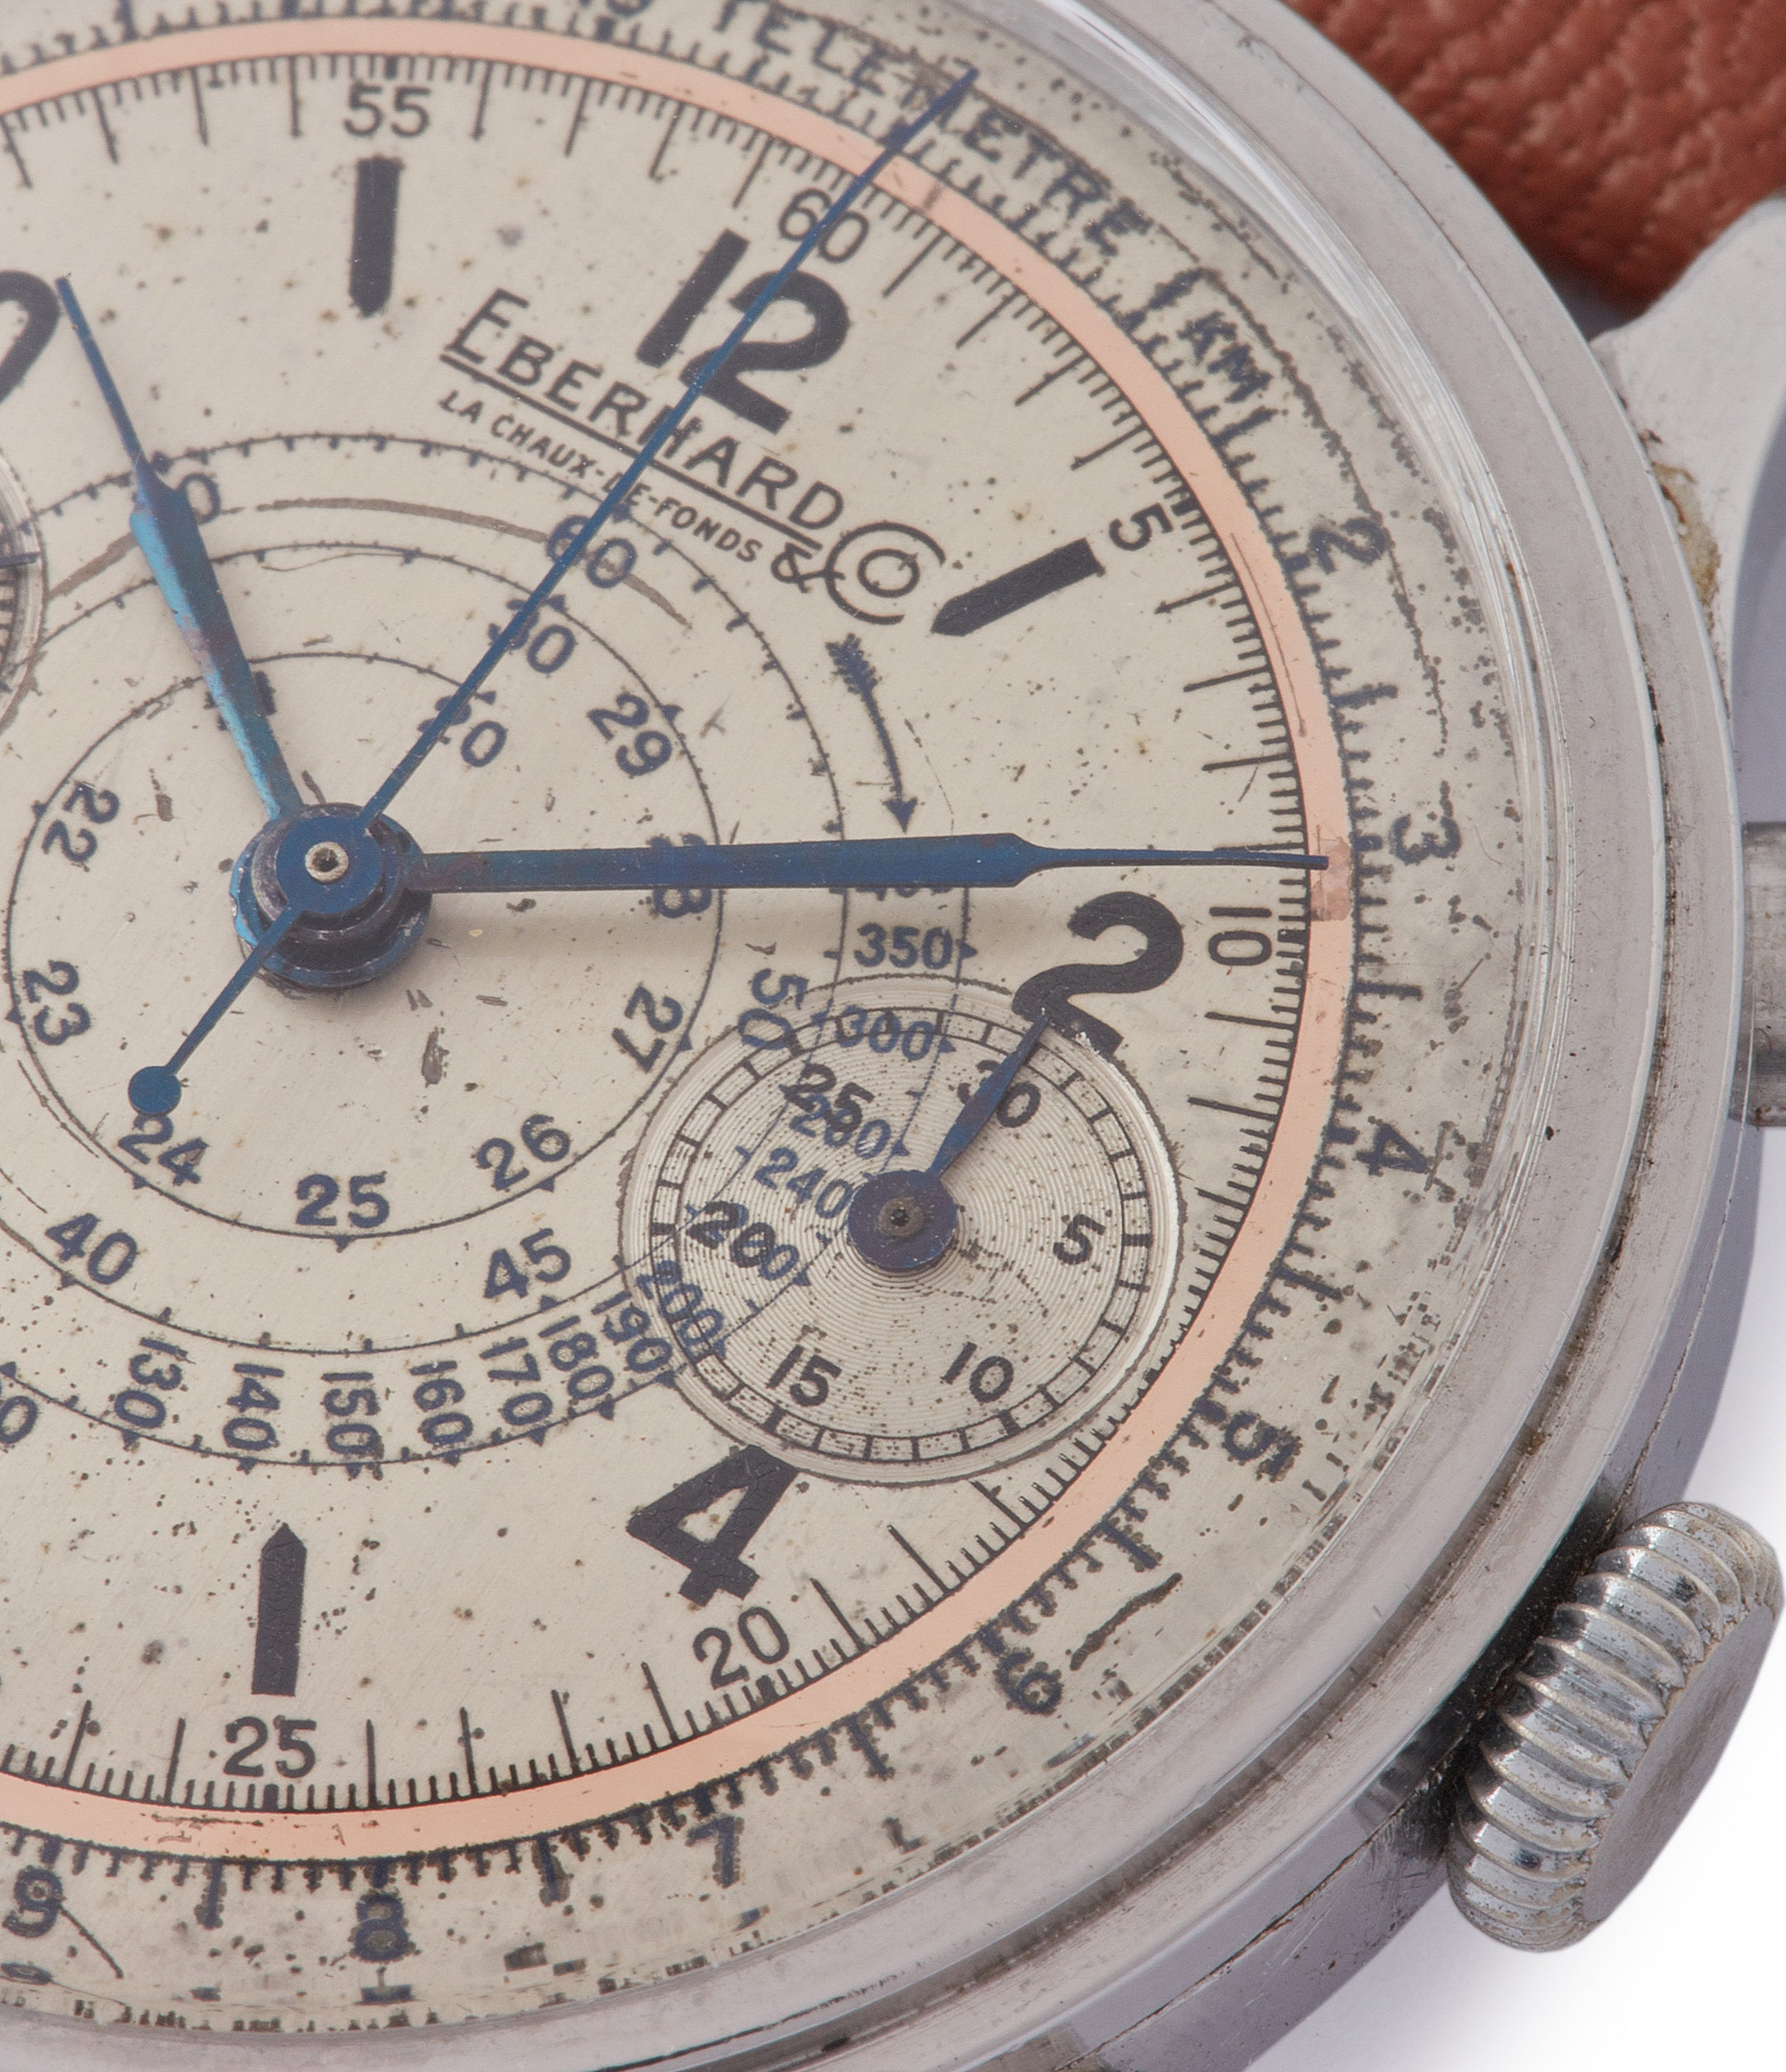 tachymeter snail scale copper ring vintage Eberhard Pre-Extra Fort Chronograph steel sport watch for sale online at A Collected Man London UK specialist of rare watches